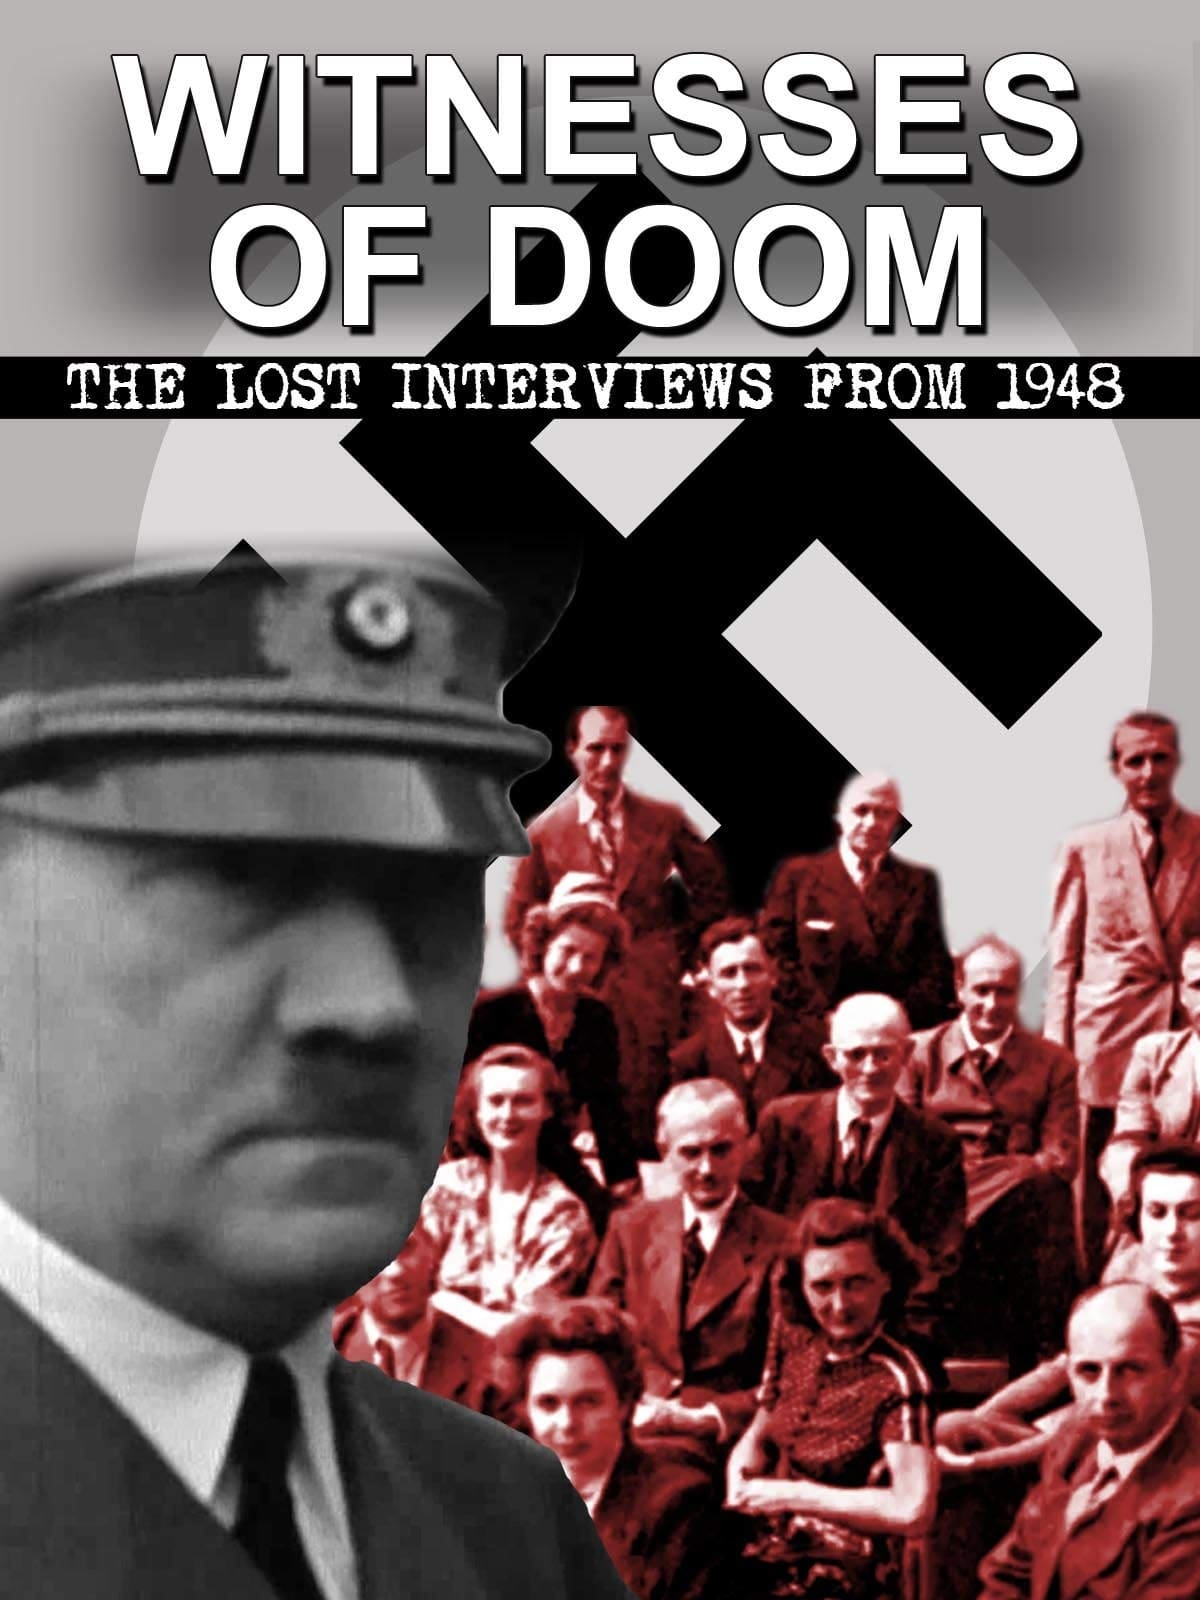 Witnesses of Doom - The Lost Interviews from 1948 on FREECABLE TV